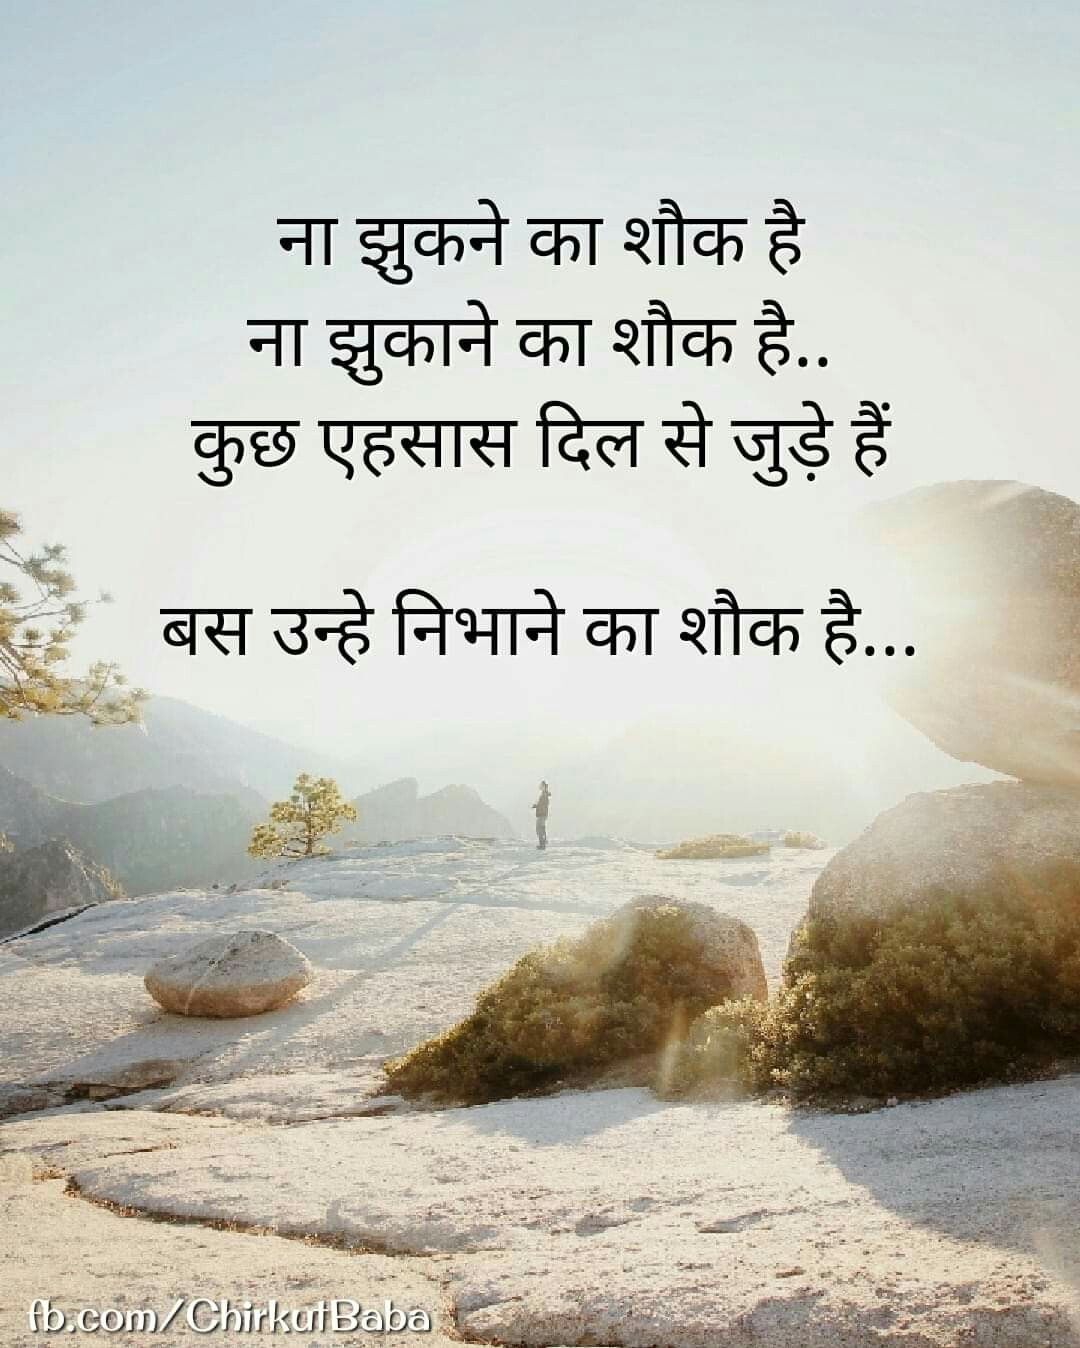 Pin By Rupesh Kumar On Beautiful Life Skl Hindi Quotes Part 2 Hindi Quotes Hindi Quotes Images Silence Quotes